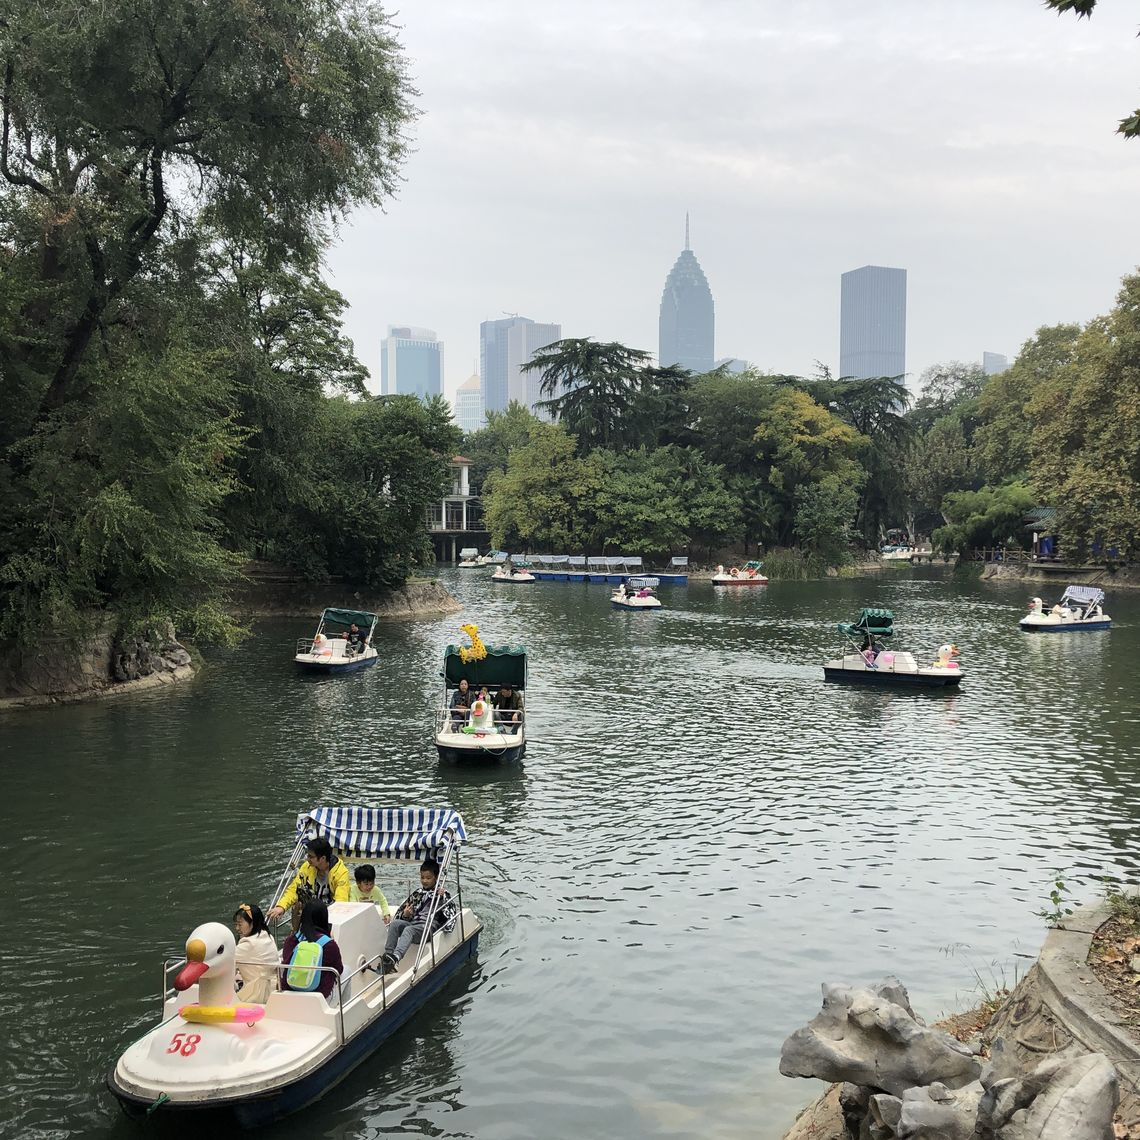 Zhongshan Park, a common name for Chinese parks in honor of Sun Zhongshan.